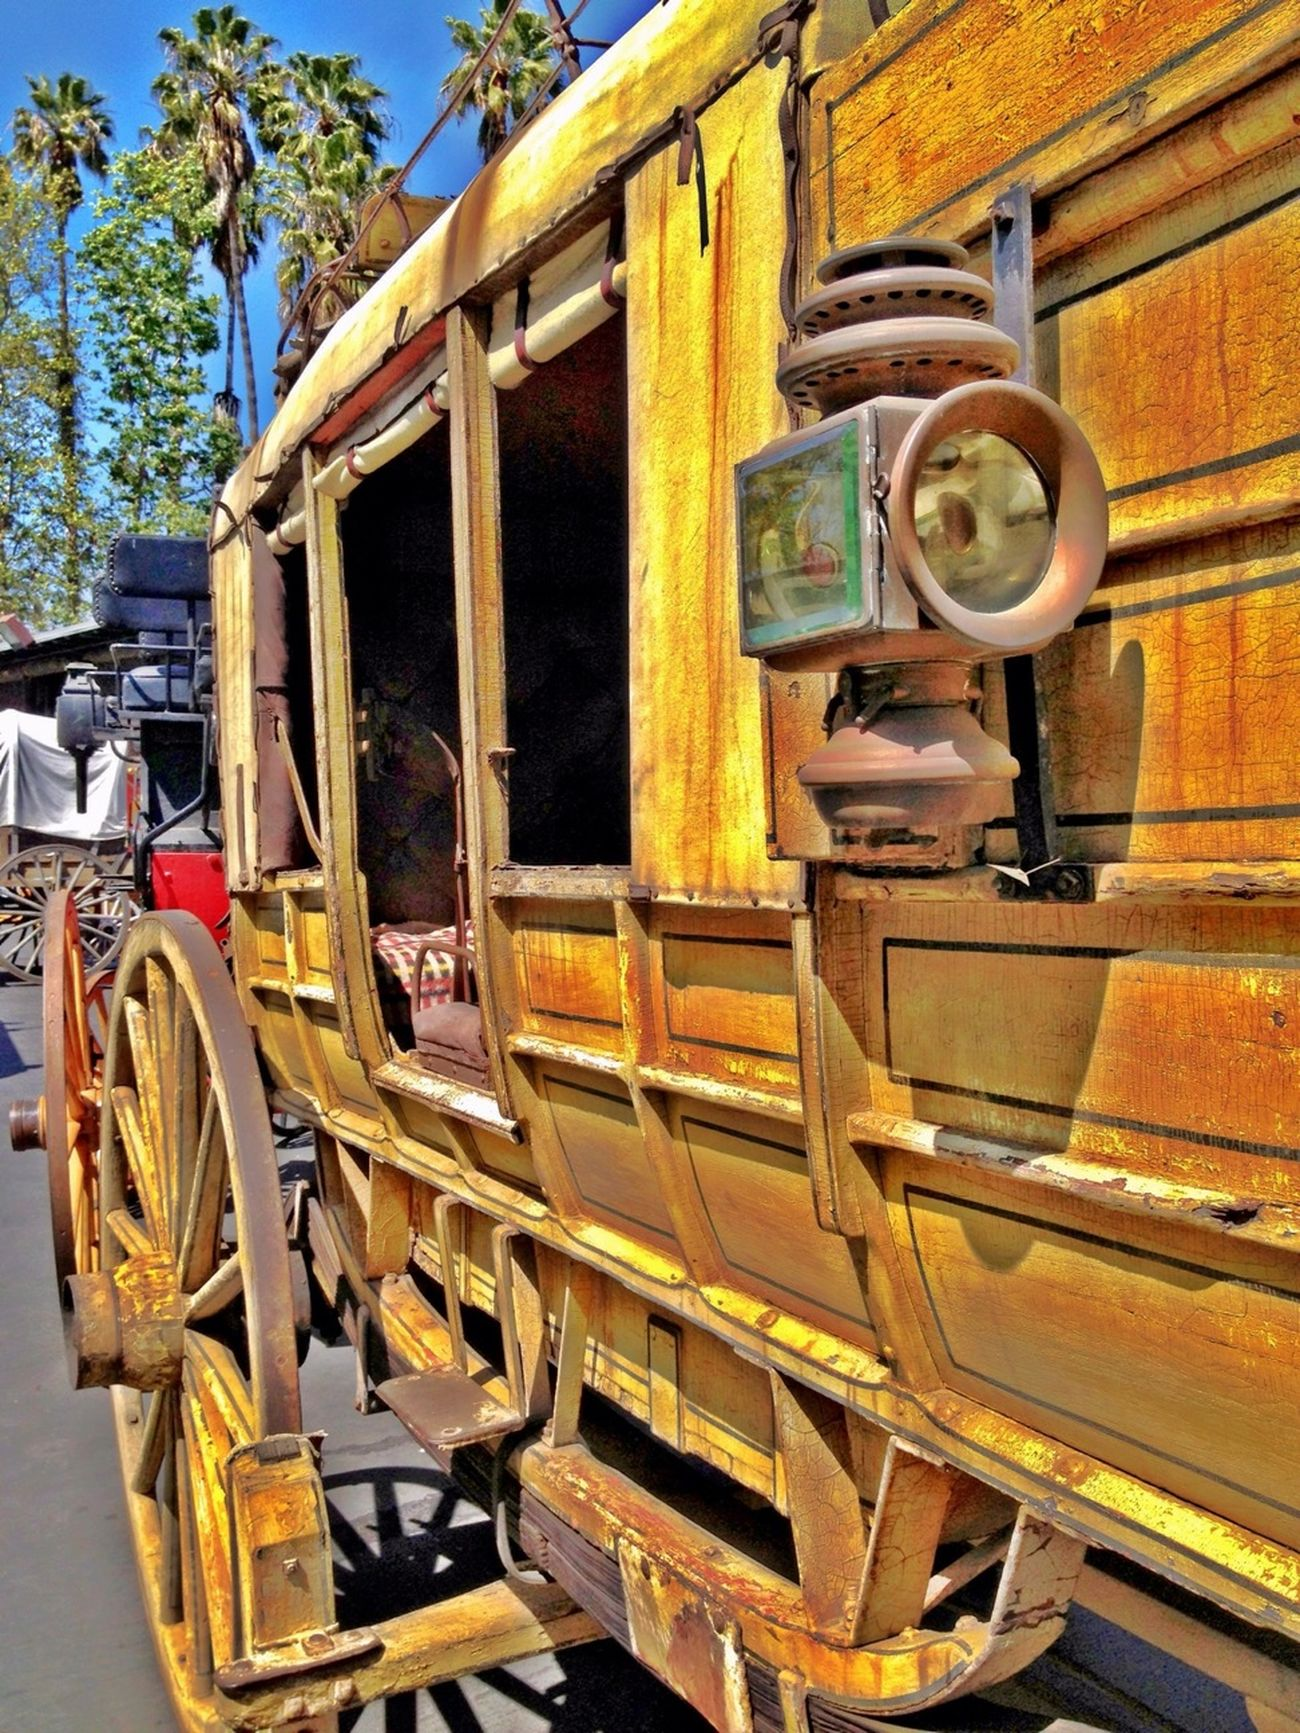 Step back in time... Old Unitedbyedit Stagecoach